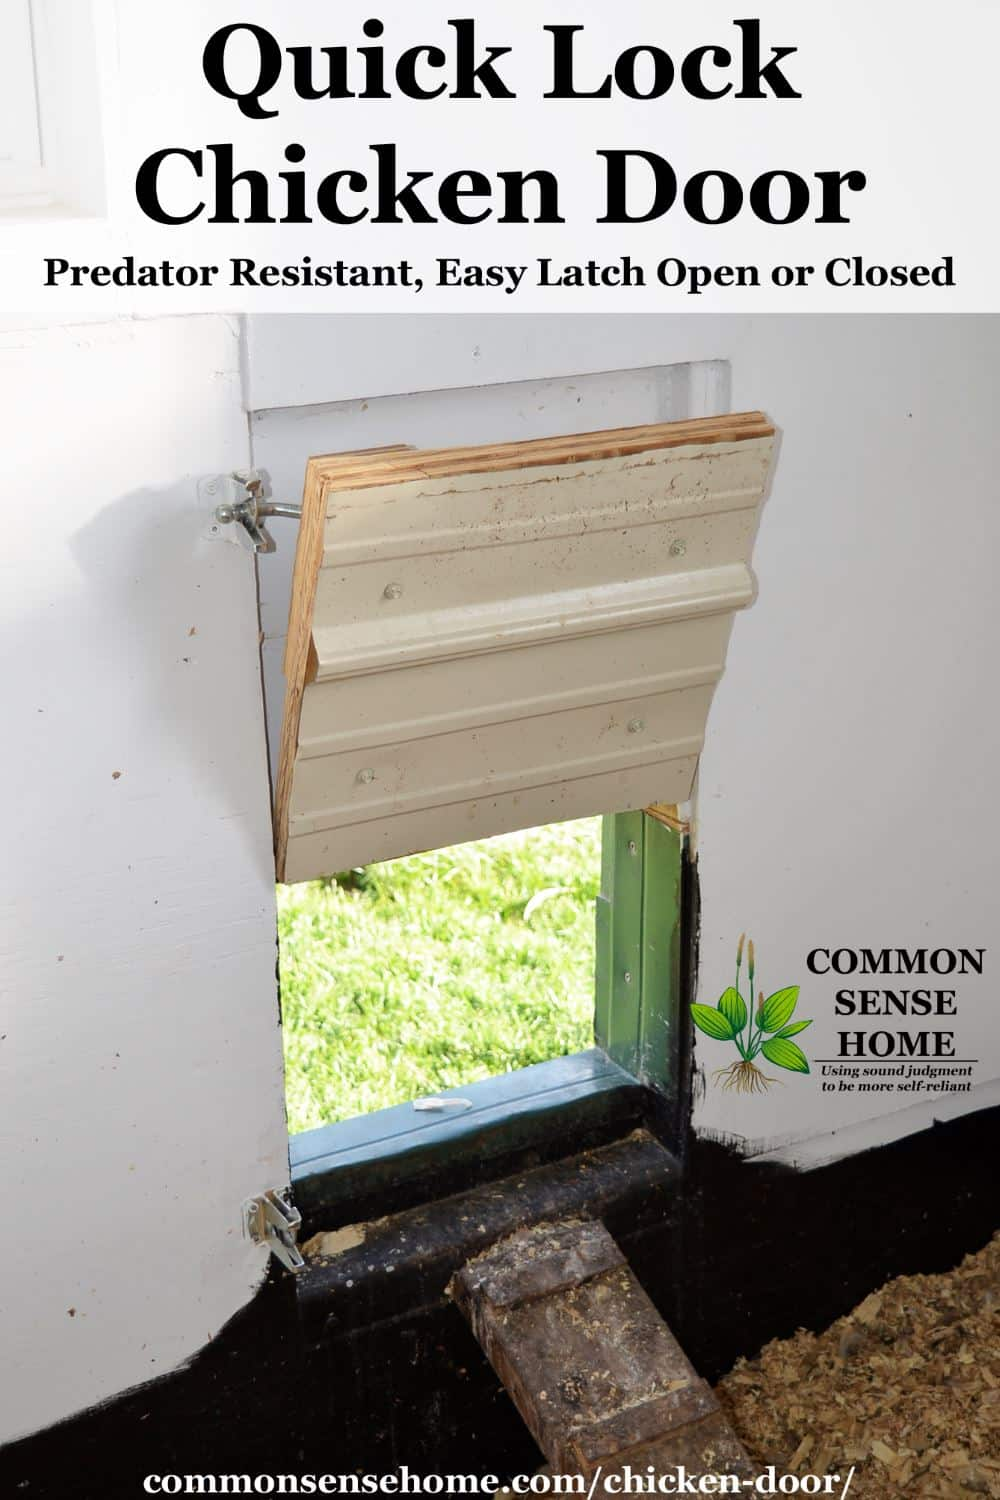 Quick Lock Chicken Door Predator Resistant Easy Latch